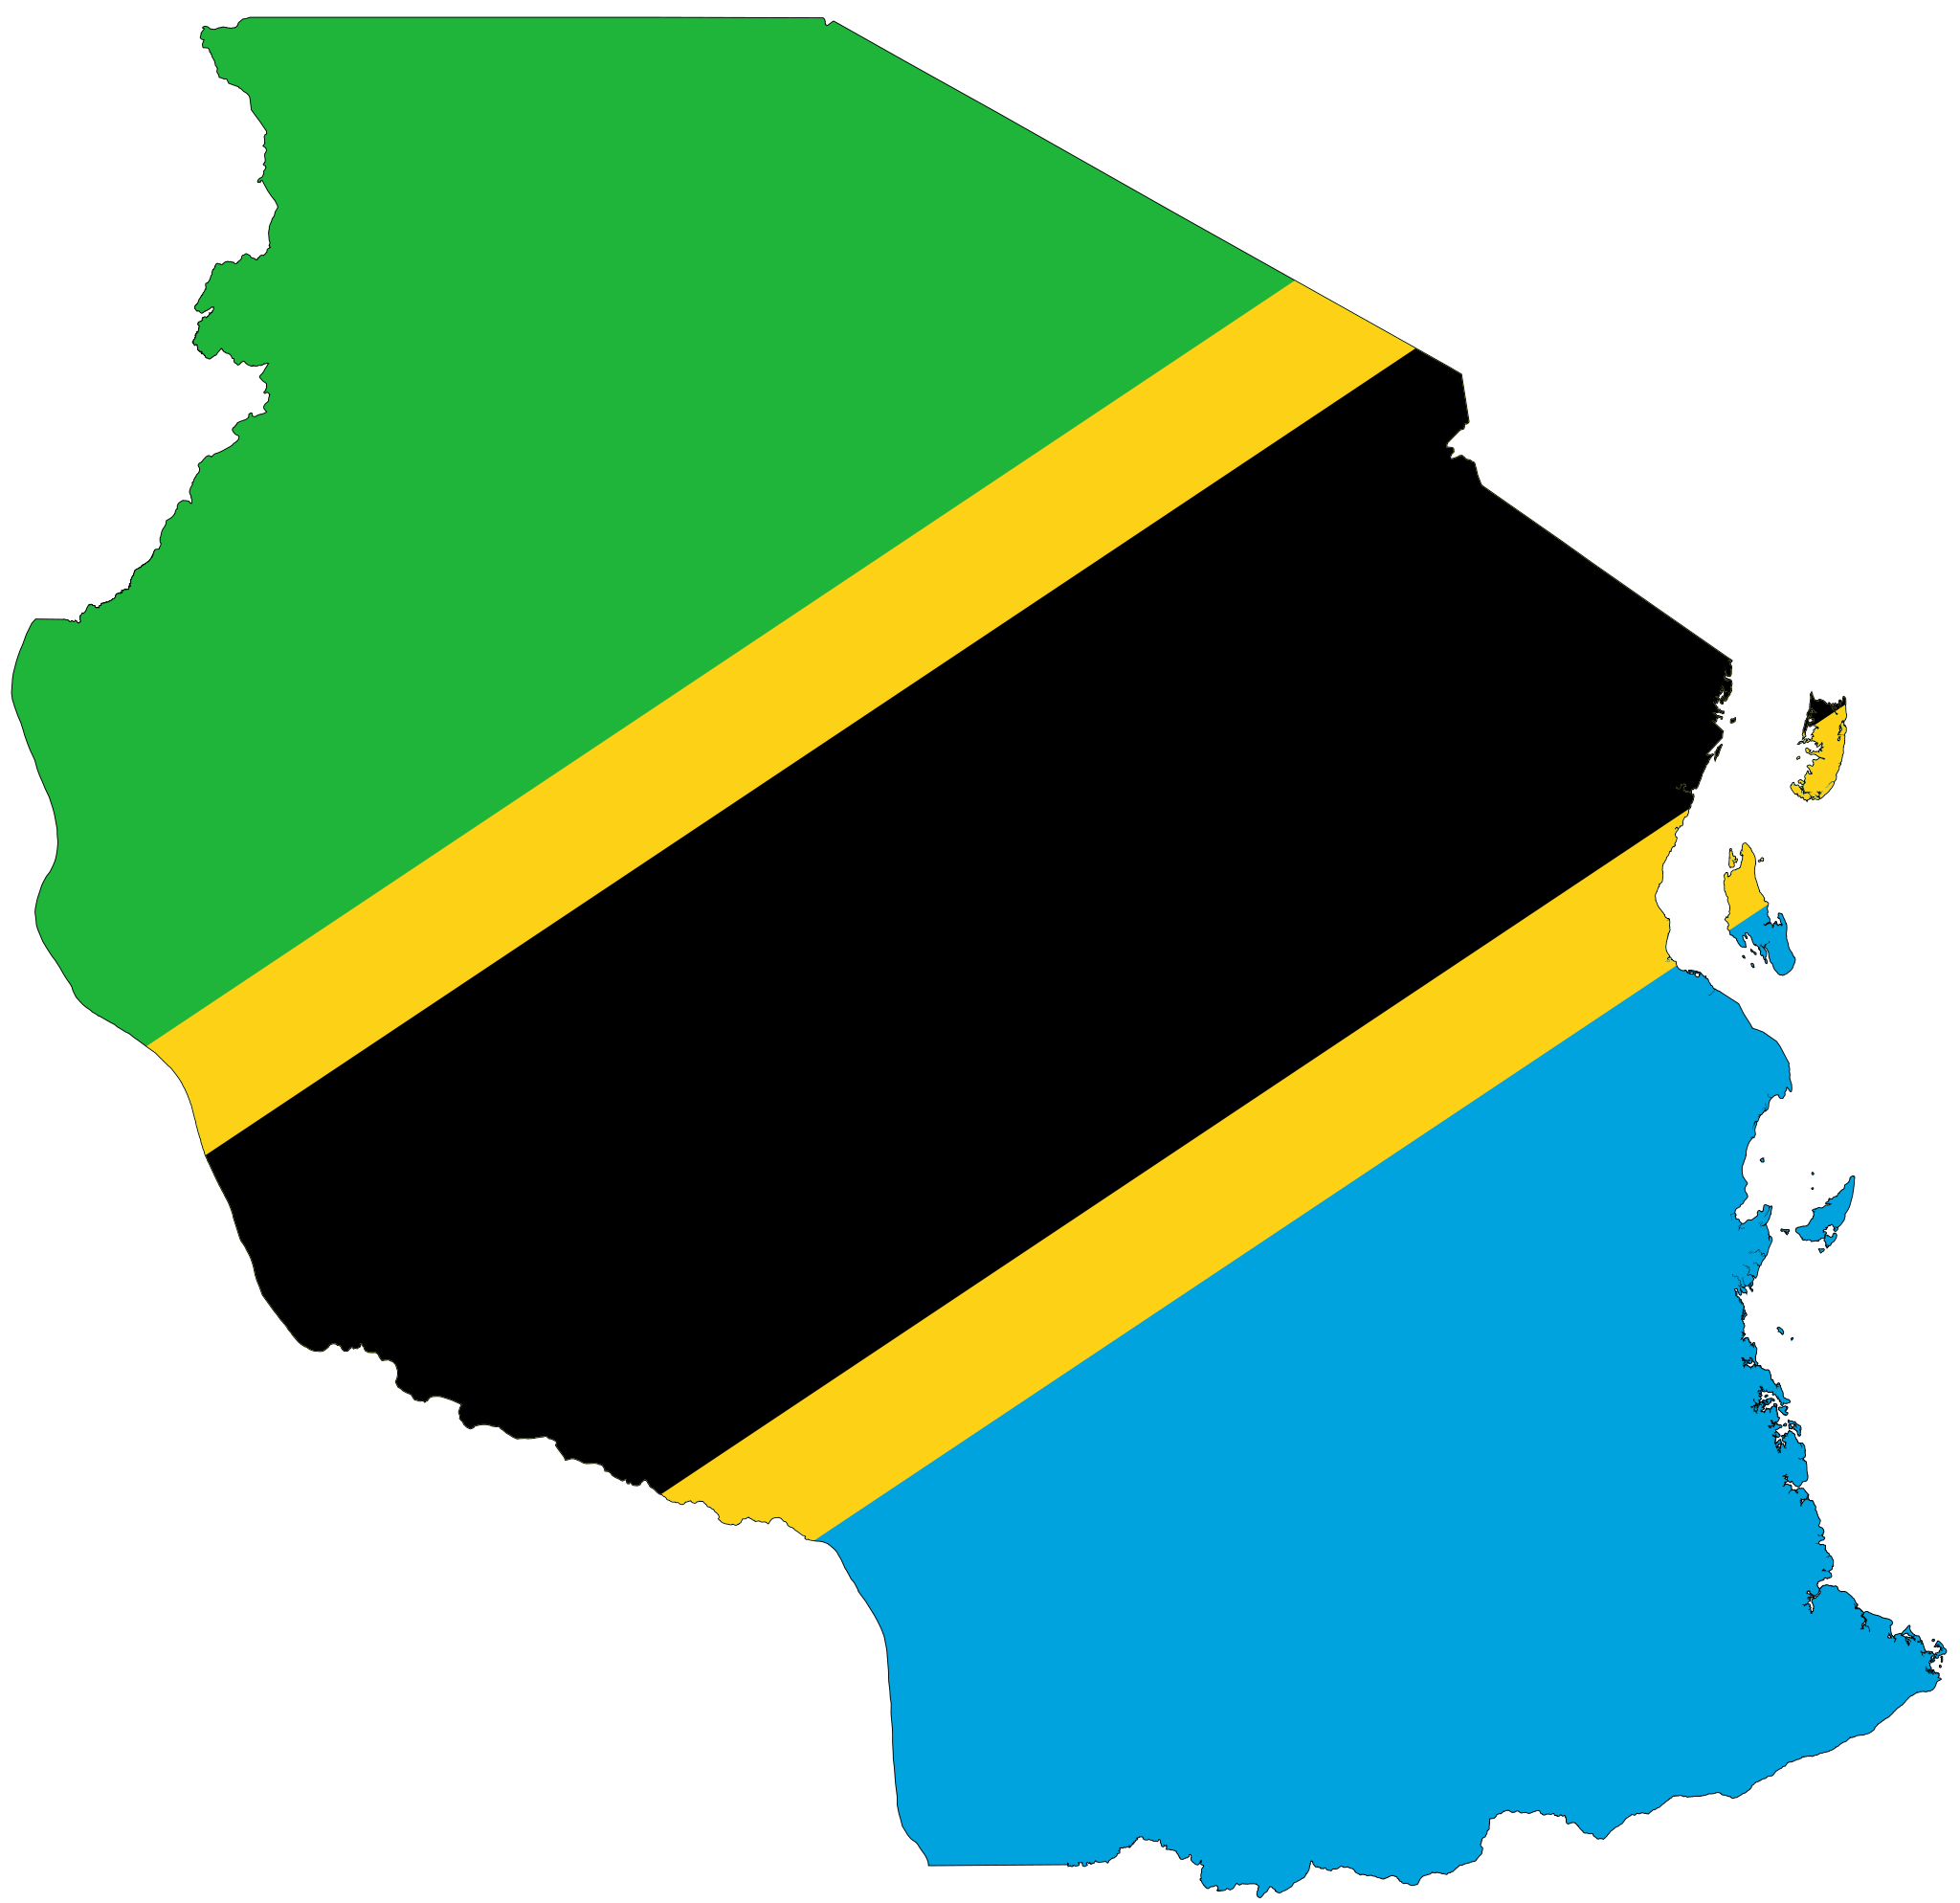 Flag Map Of Africa.Tanzania Flag Map Africa Pinterest Tanzania Africa And